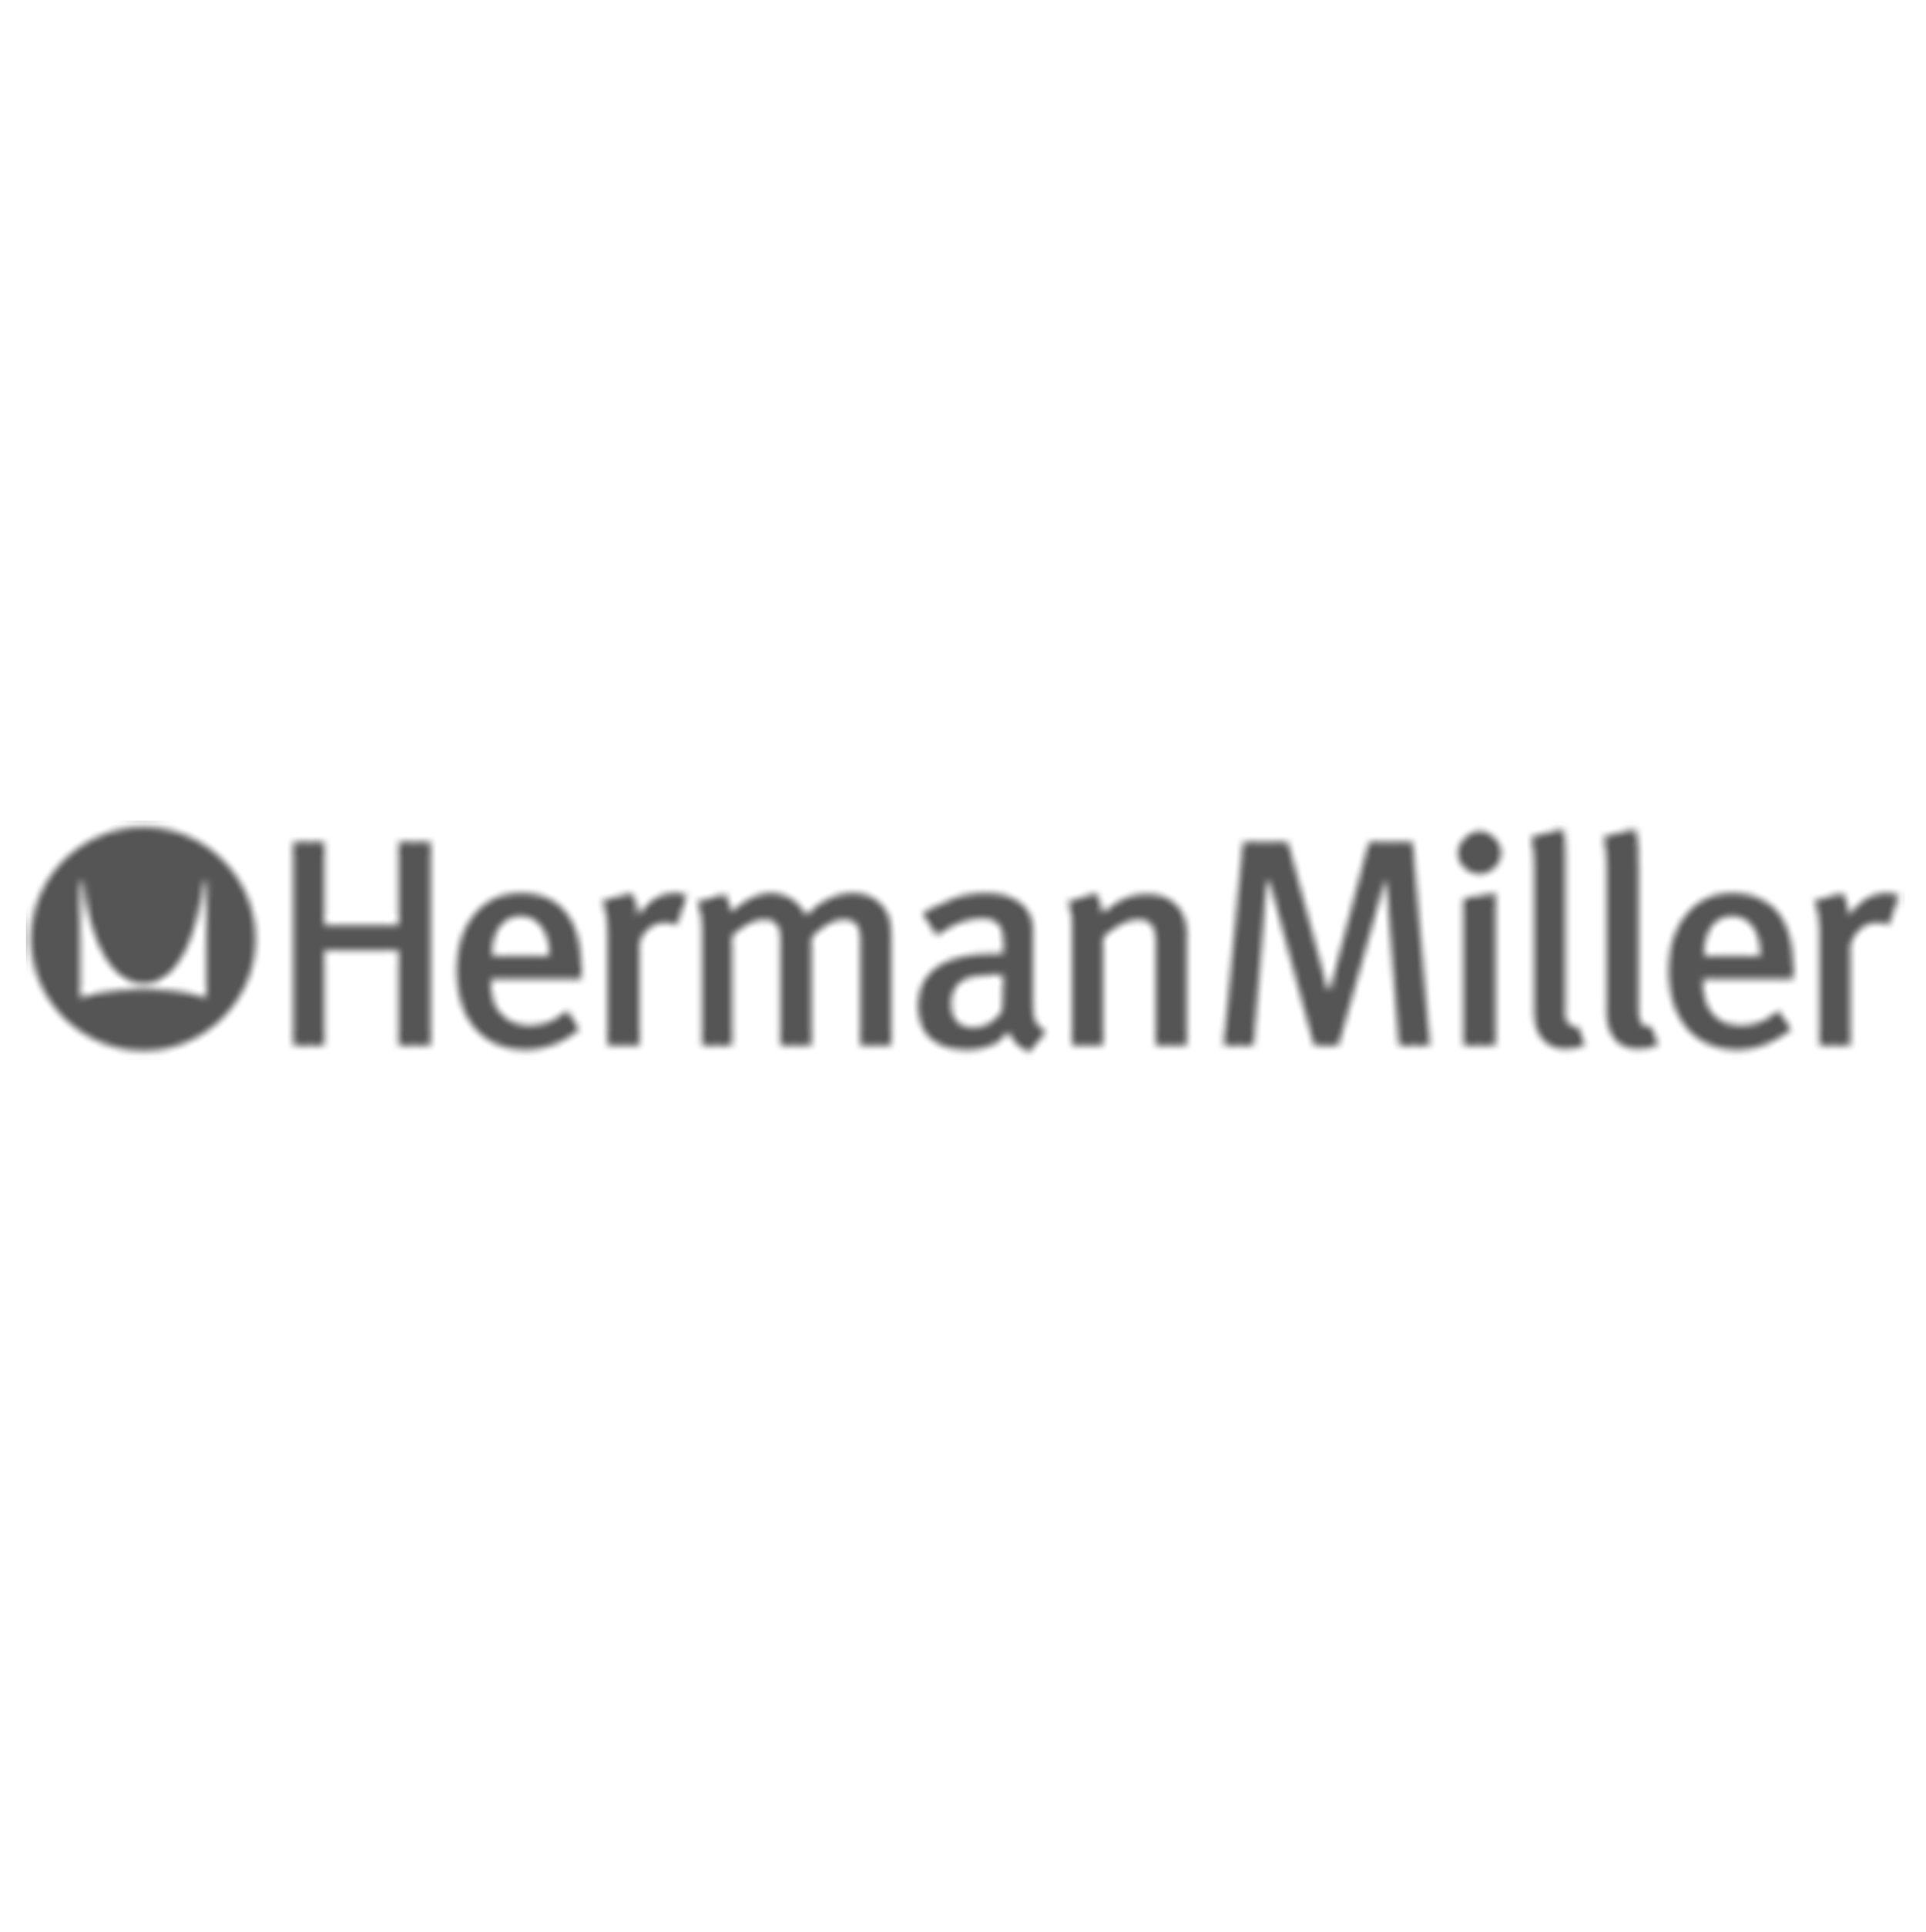 HermanMiller_Gray.jpg